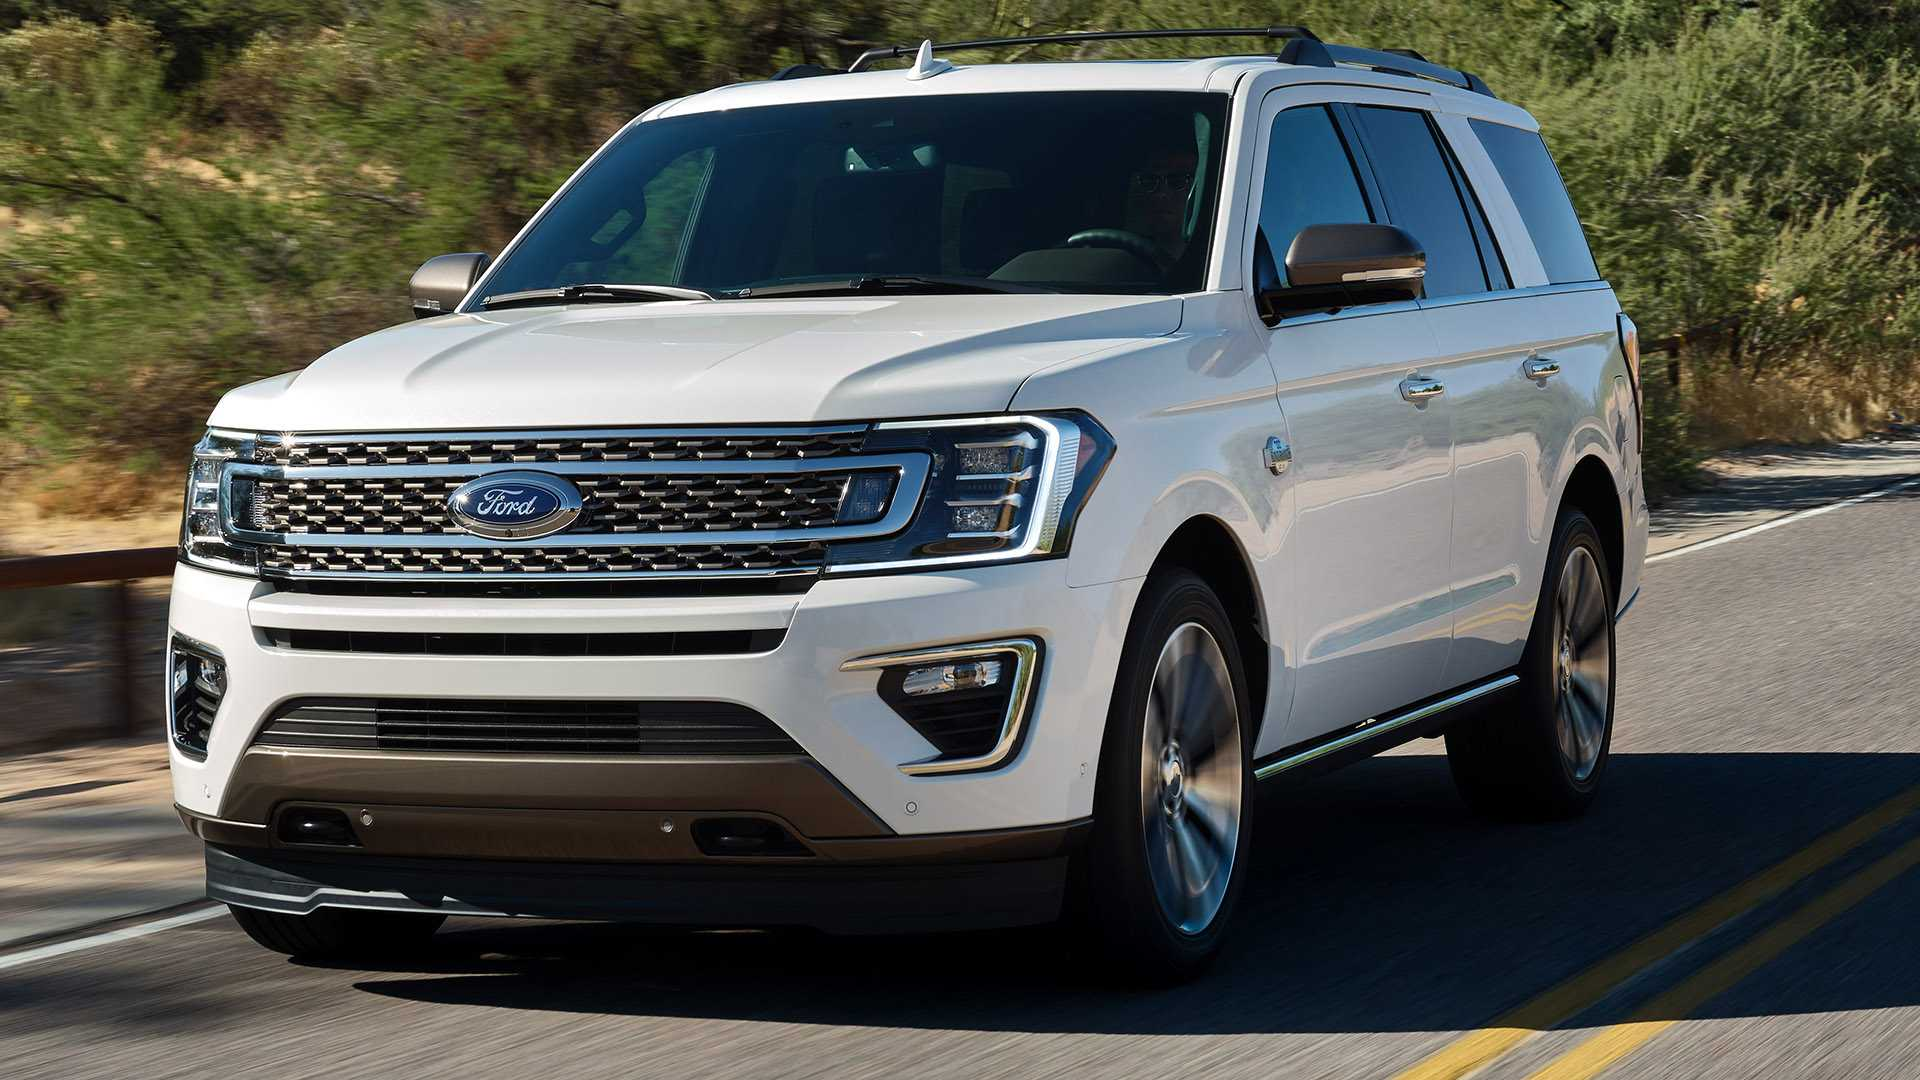 24 The Best 2020 Ford Expedition Concept And Review